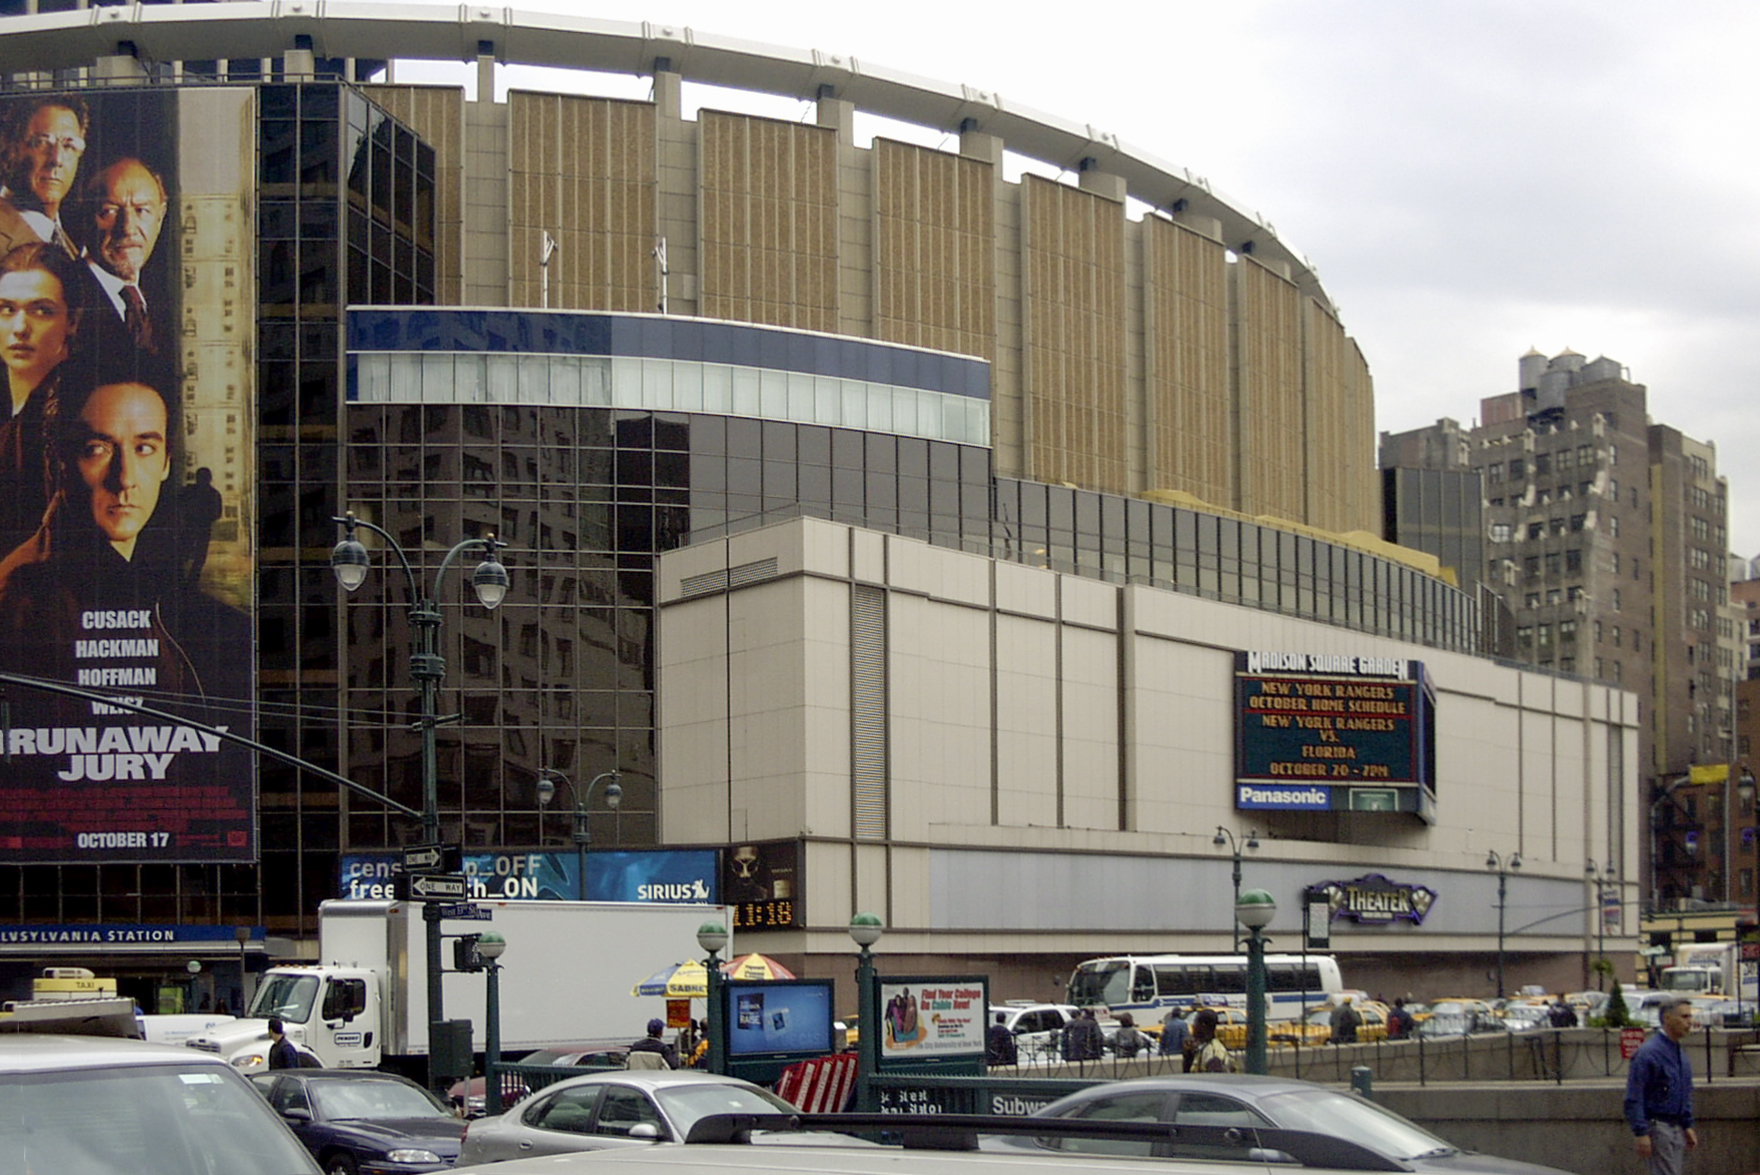 Madison square garden 1925 wikipedia all basketball scores info Madison square garden basketball